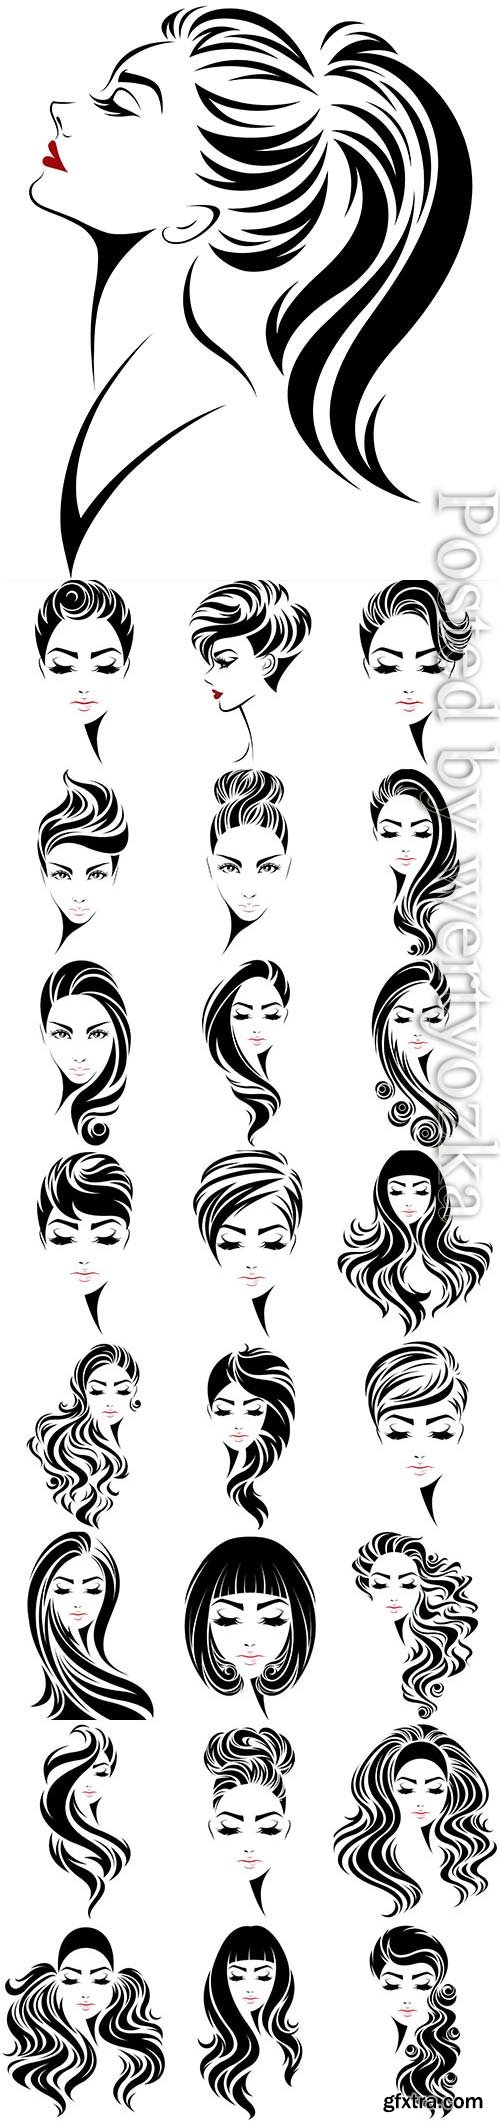 Drawn faces of girls with different hairstyles in vector